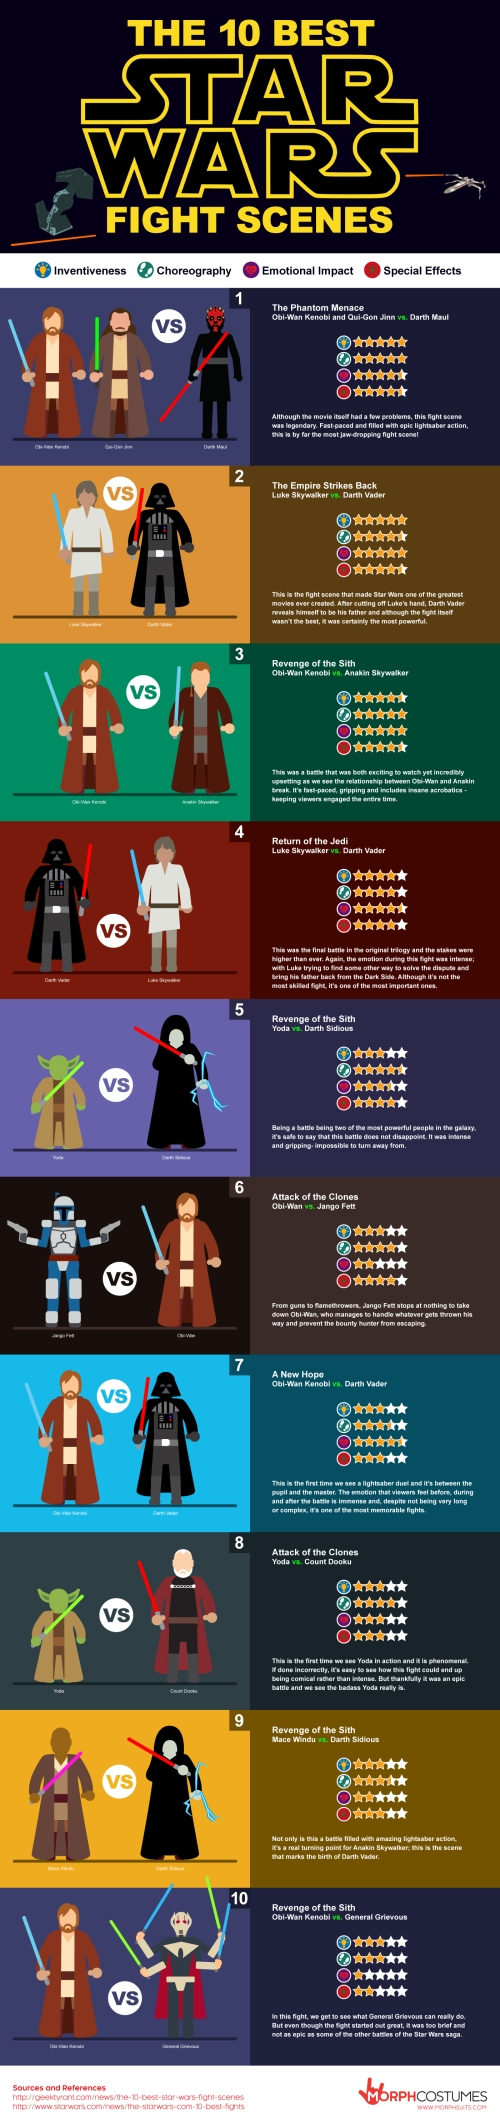 Top-10-STAR-WARS-Fight-Scene-Infographic-2